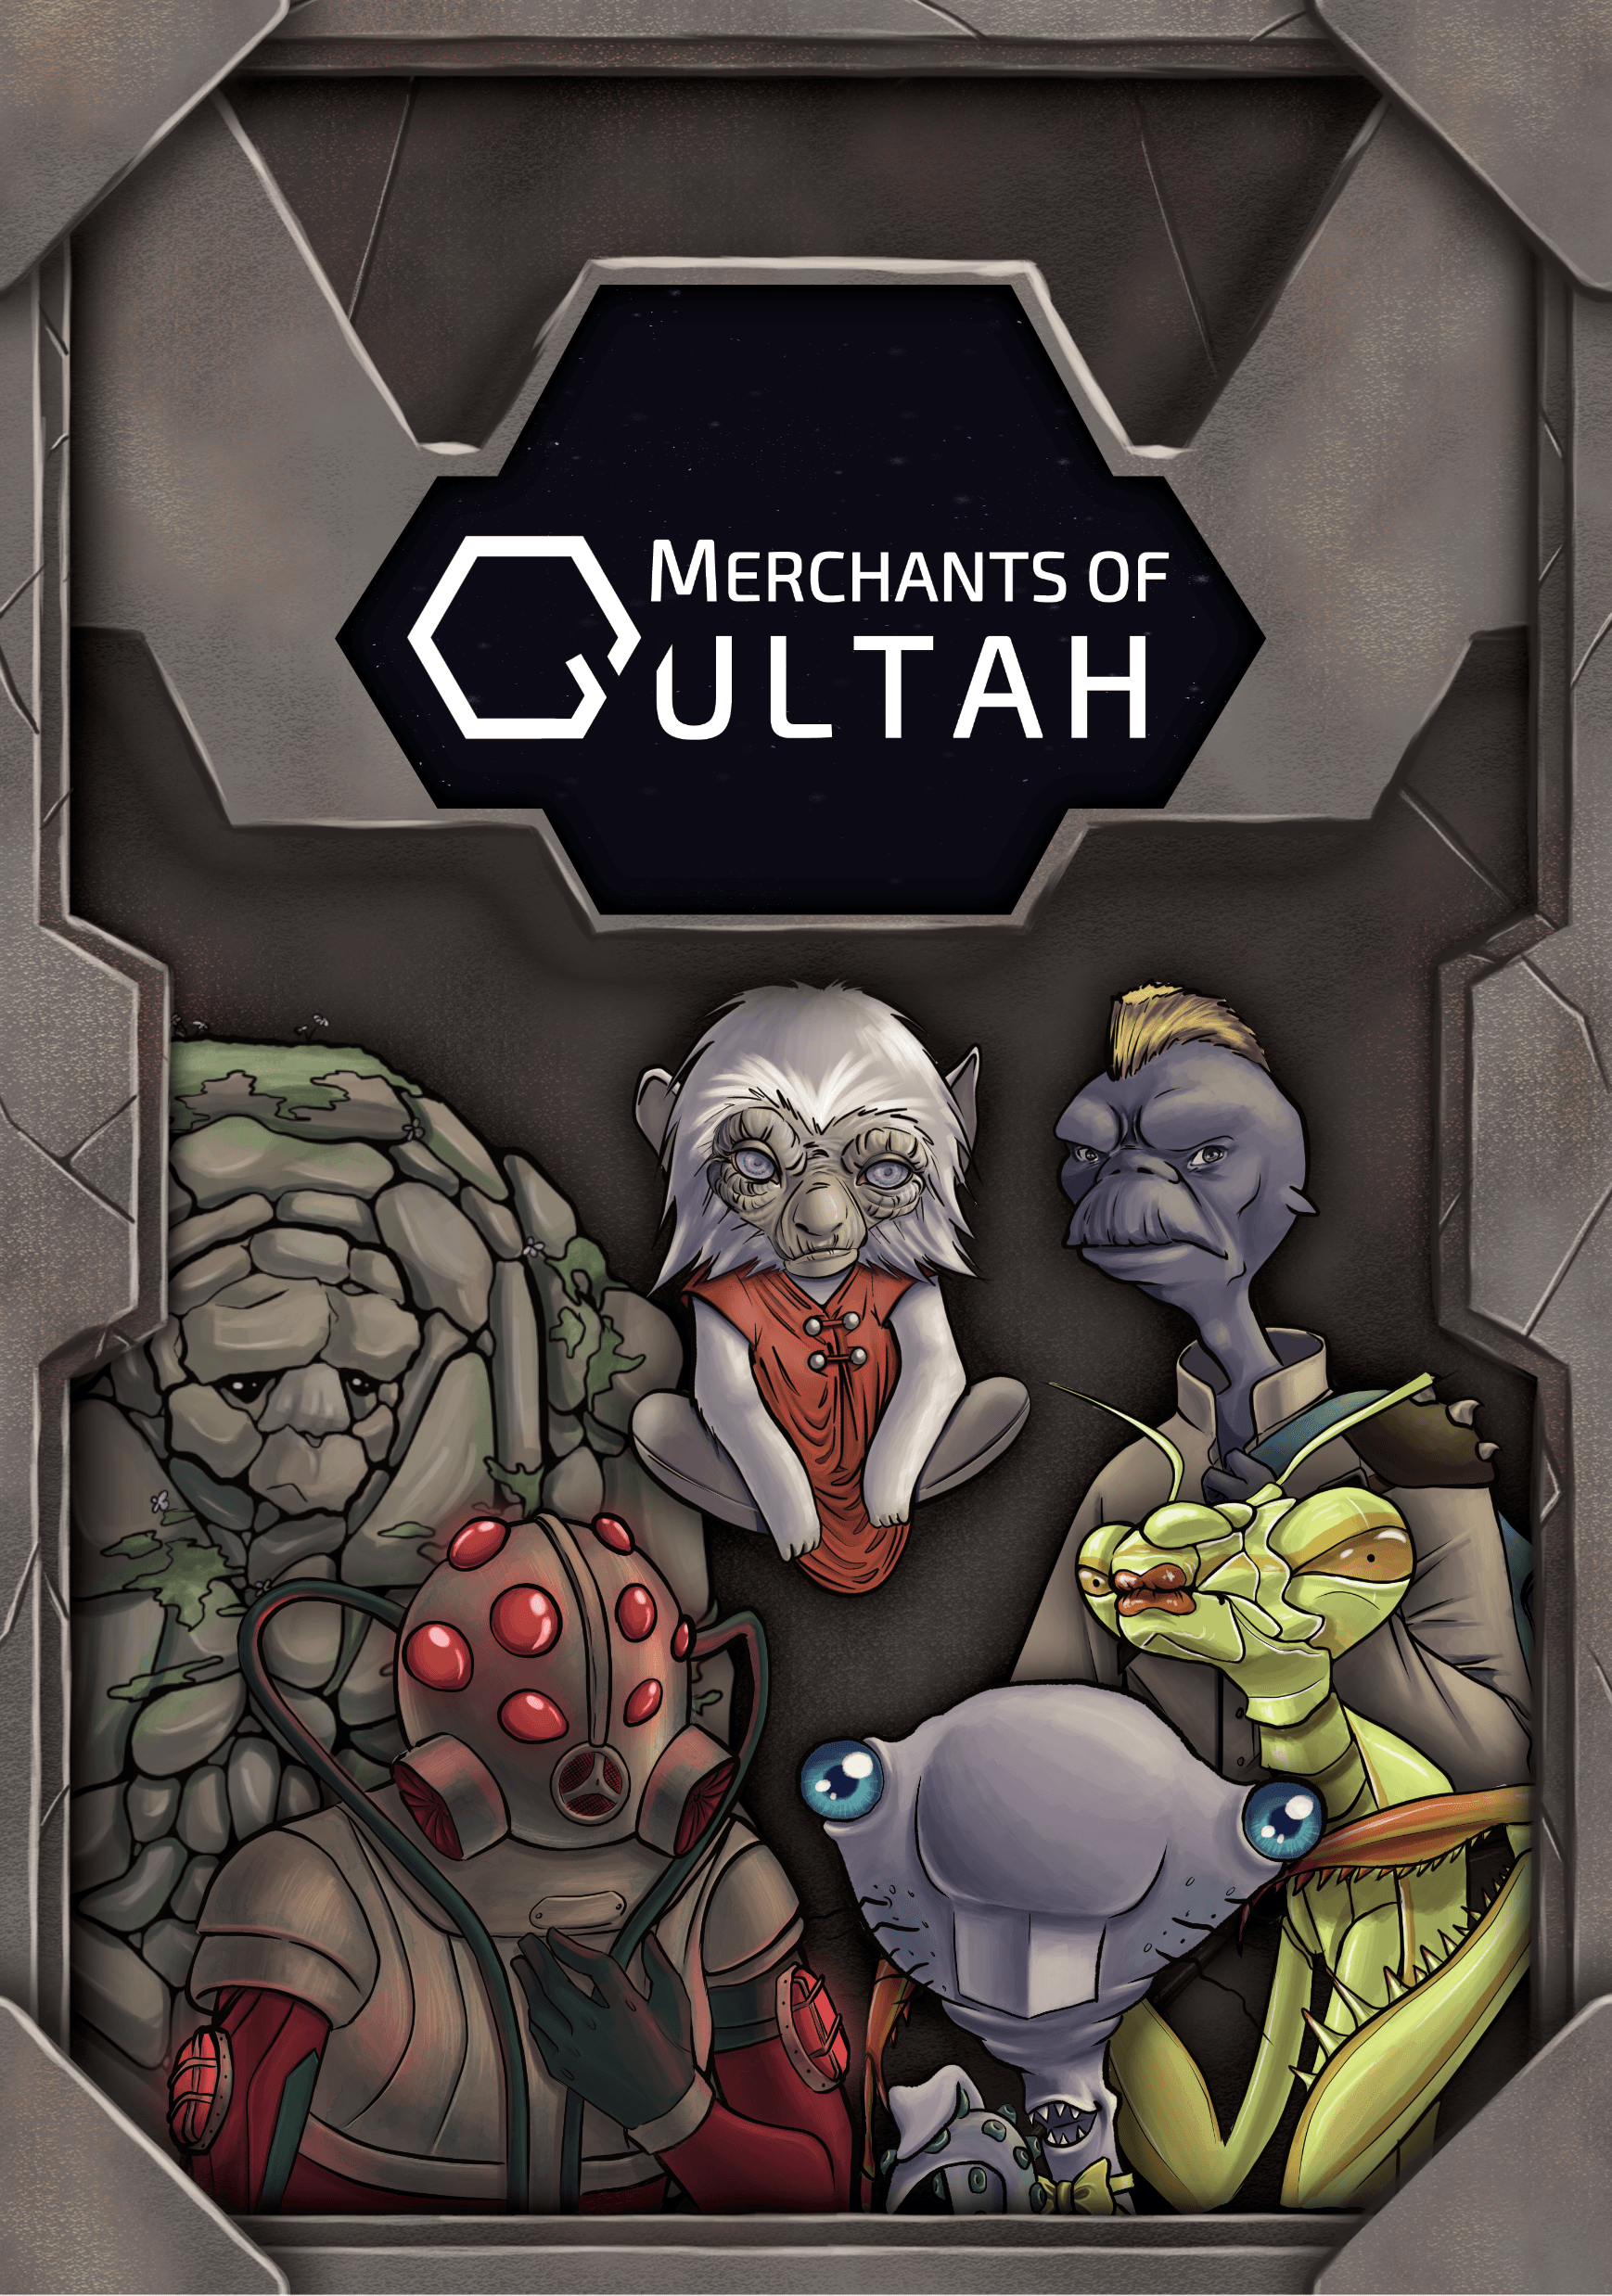 Merchants of Qultah